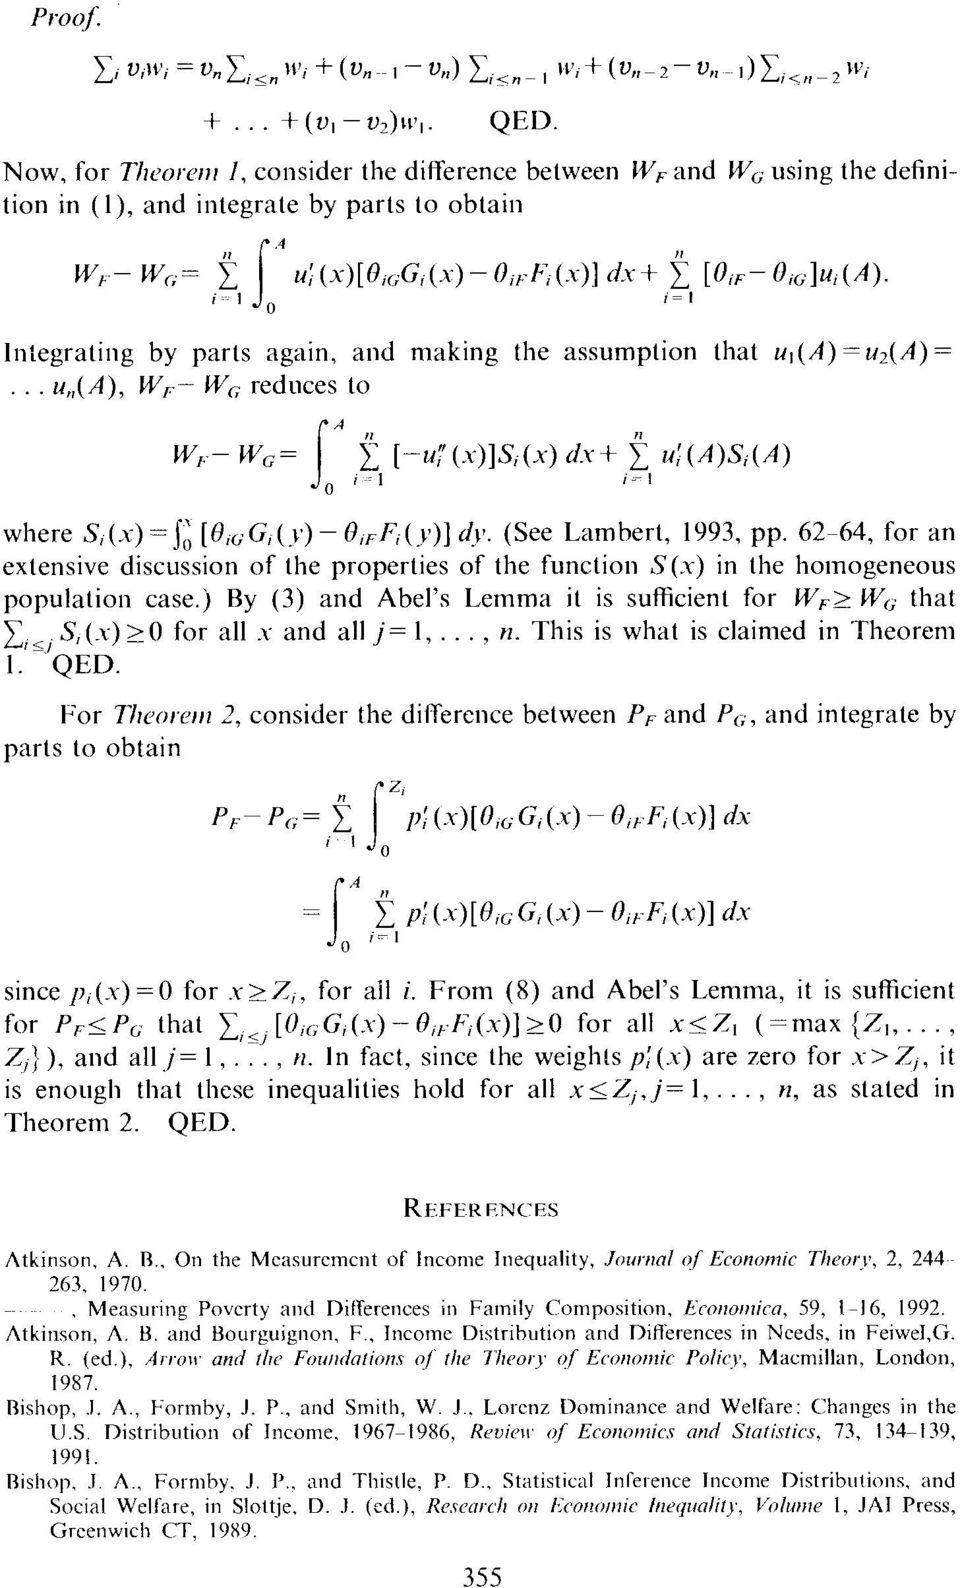 62-64, for an extensive discussion of the properties of the function S(x) in the homogeneous population case.) By (3) and Abel's Lemma it is sufficient for WF2 Wr, that CIS, S,(.x) 20 for all.